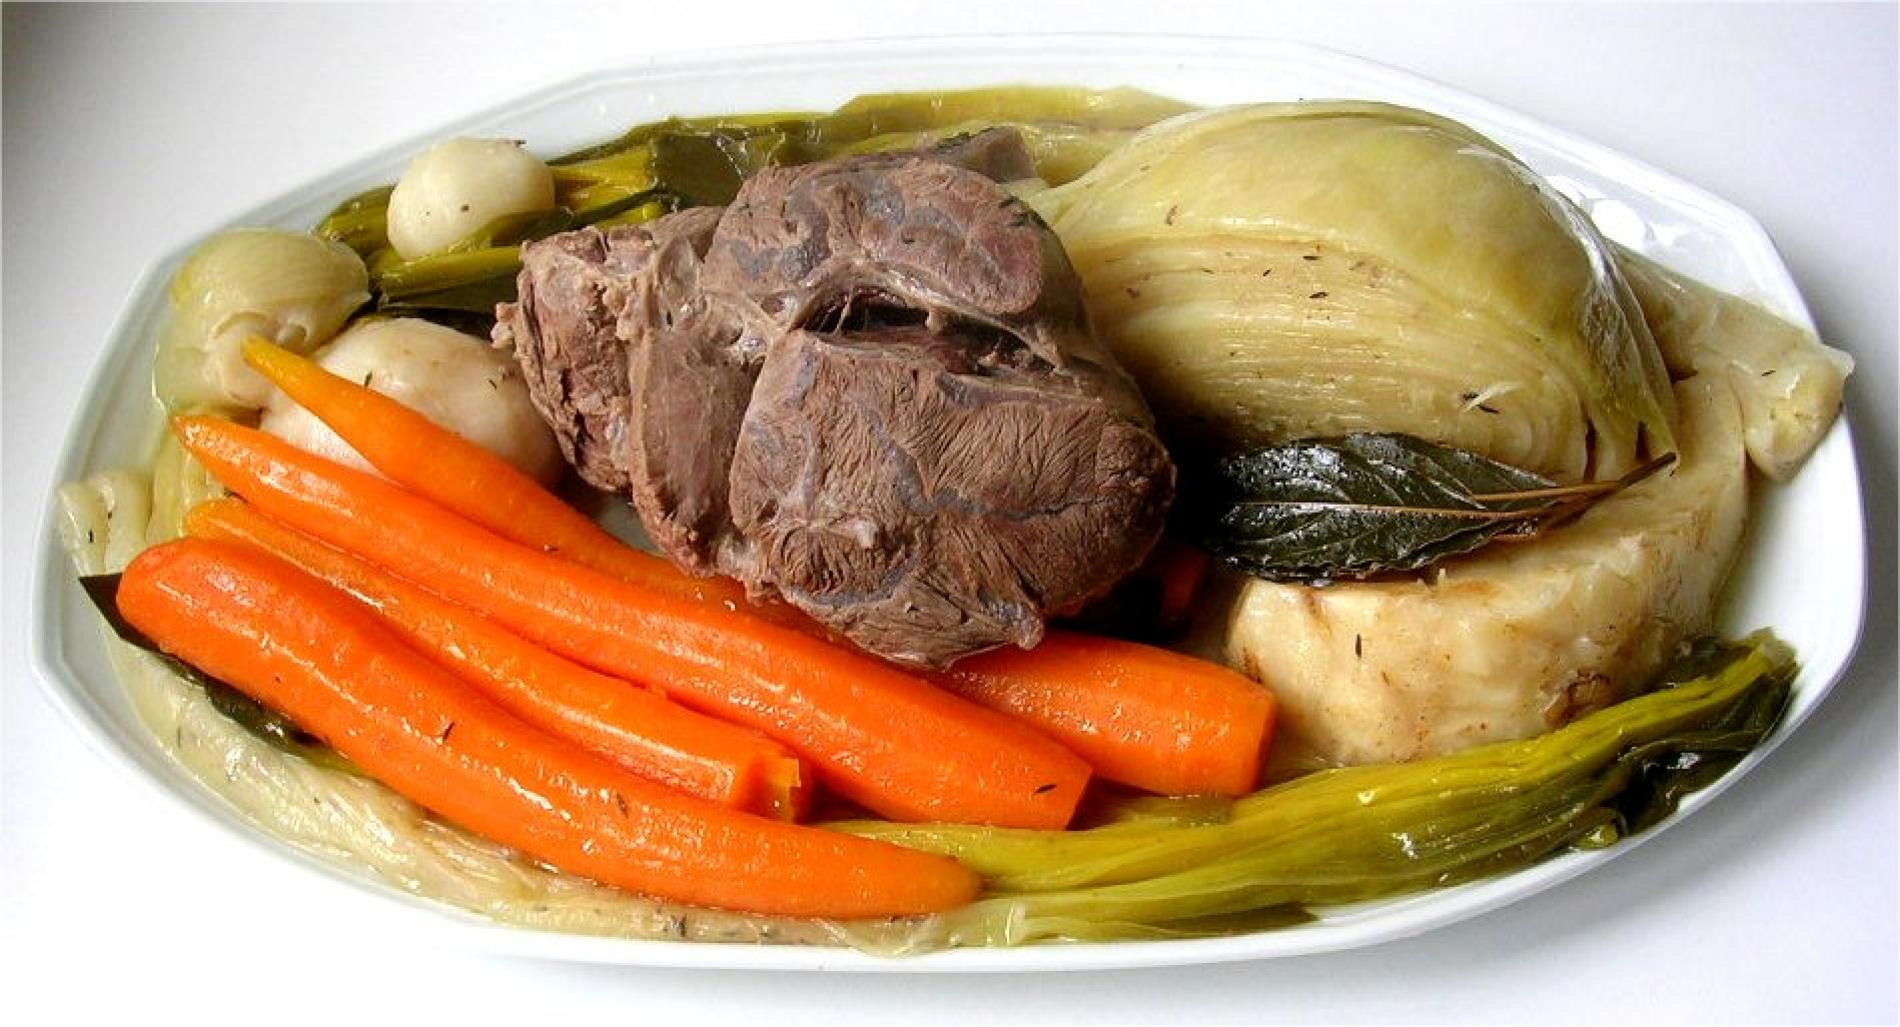 MENU POT AU FEU DU 6 et 7 AVRIL